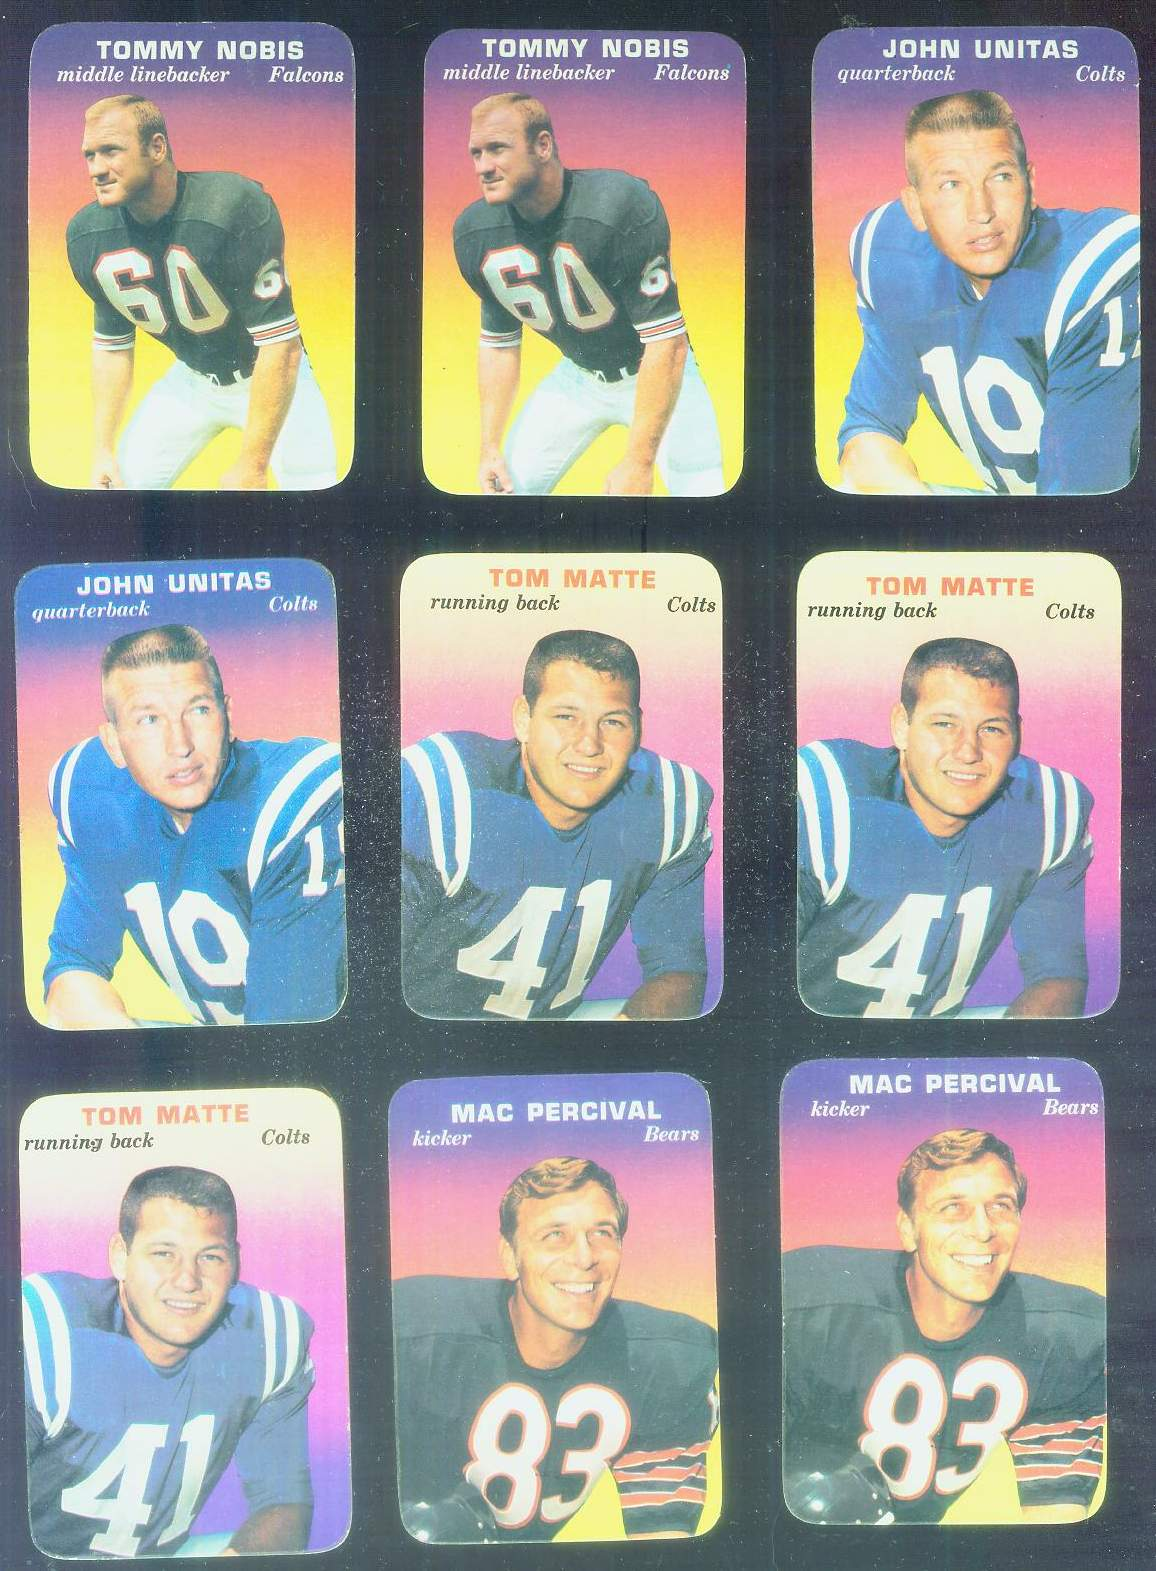 1970 Topps Glossy FB Inserts #.1 Tommy Nobis (Falcons) Football cards value